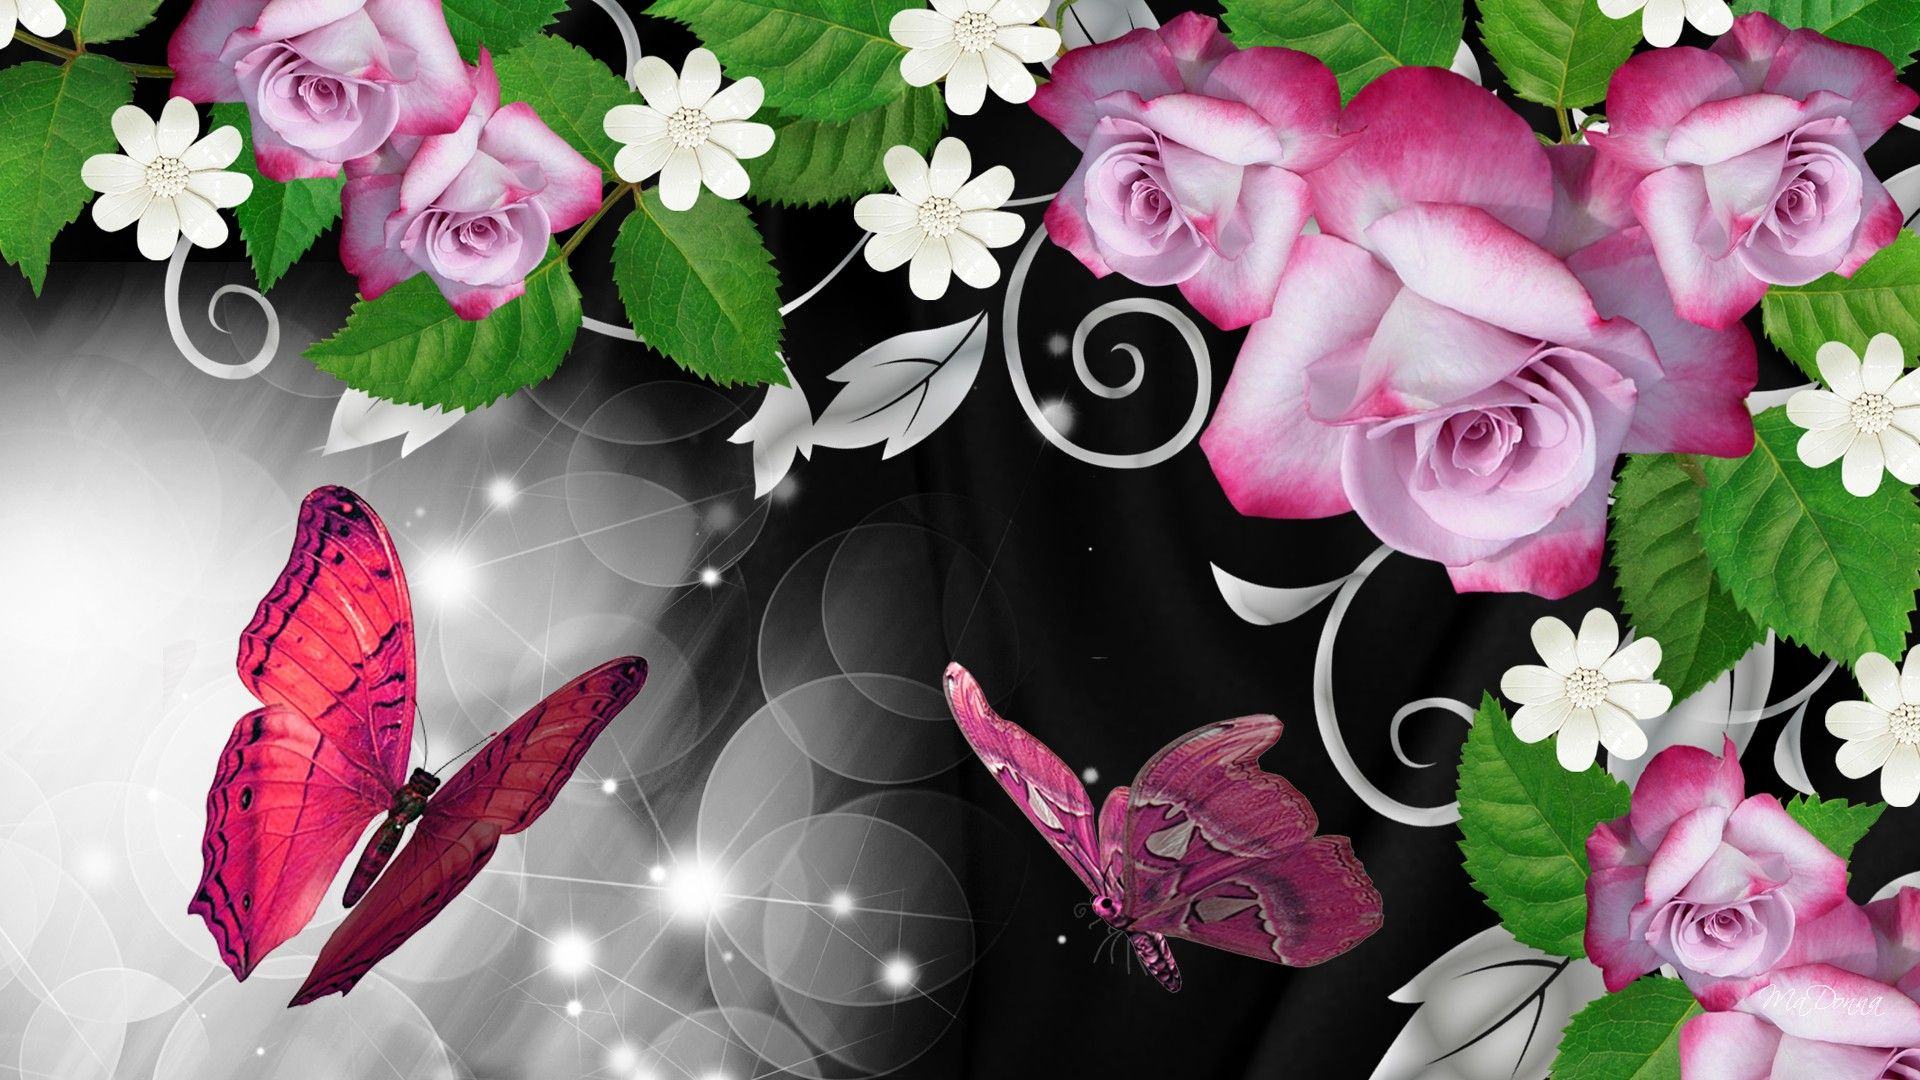 Hd Pink Roses Butterfly Shine Wallpaper Download Free 53783 Butterfly Wallpaper Butterfly Background Pink Flowers